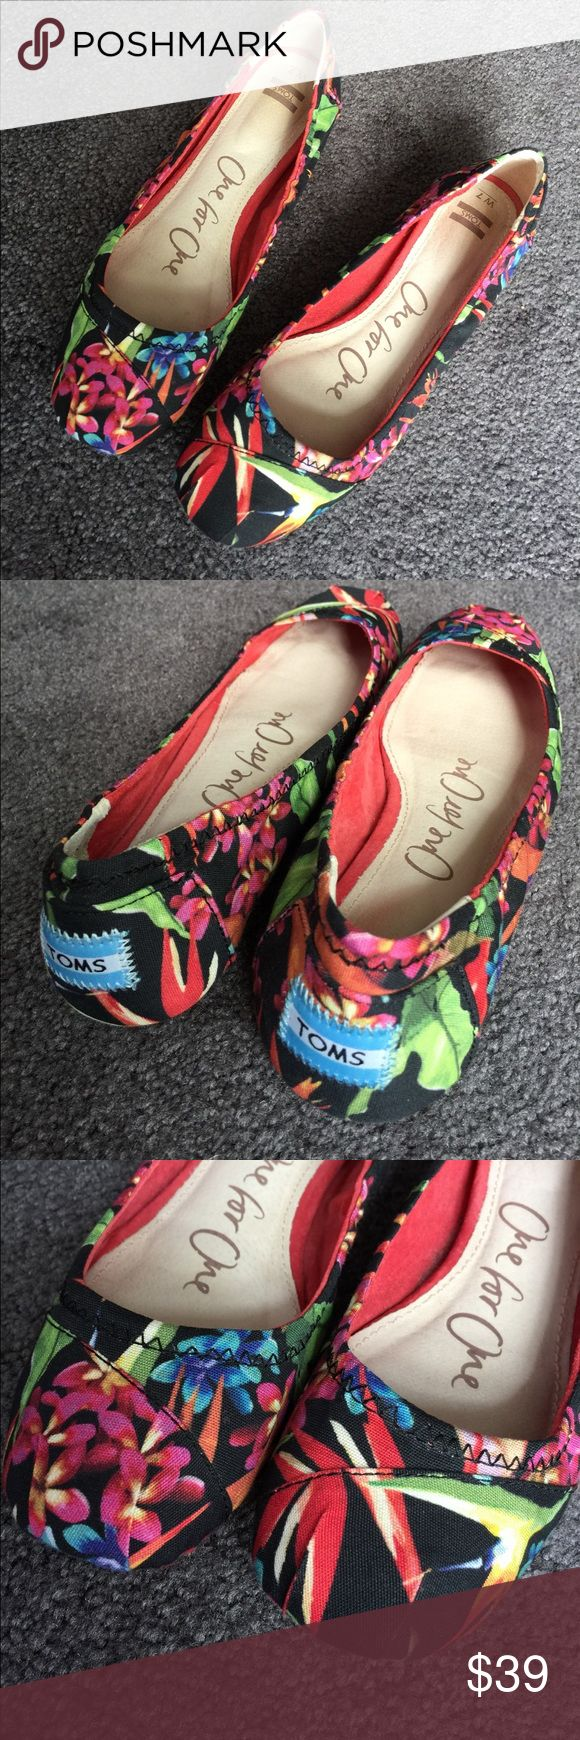 Colorful Toms Ballet Flat Size 7 Size 7 (normal width) Tom's ballet flat in black, red, pink, green, etc tropical floral pattern.  Only worn 2 or 3 times. I have too many pairs so will sell those not getting worn much.  Very cute, great with jeans or more dressed up.  Thanks for looking! TOMS Shoes Flats & Loafers